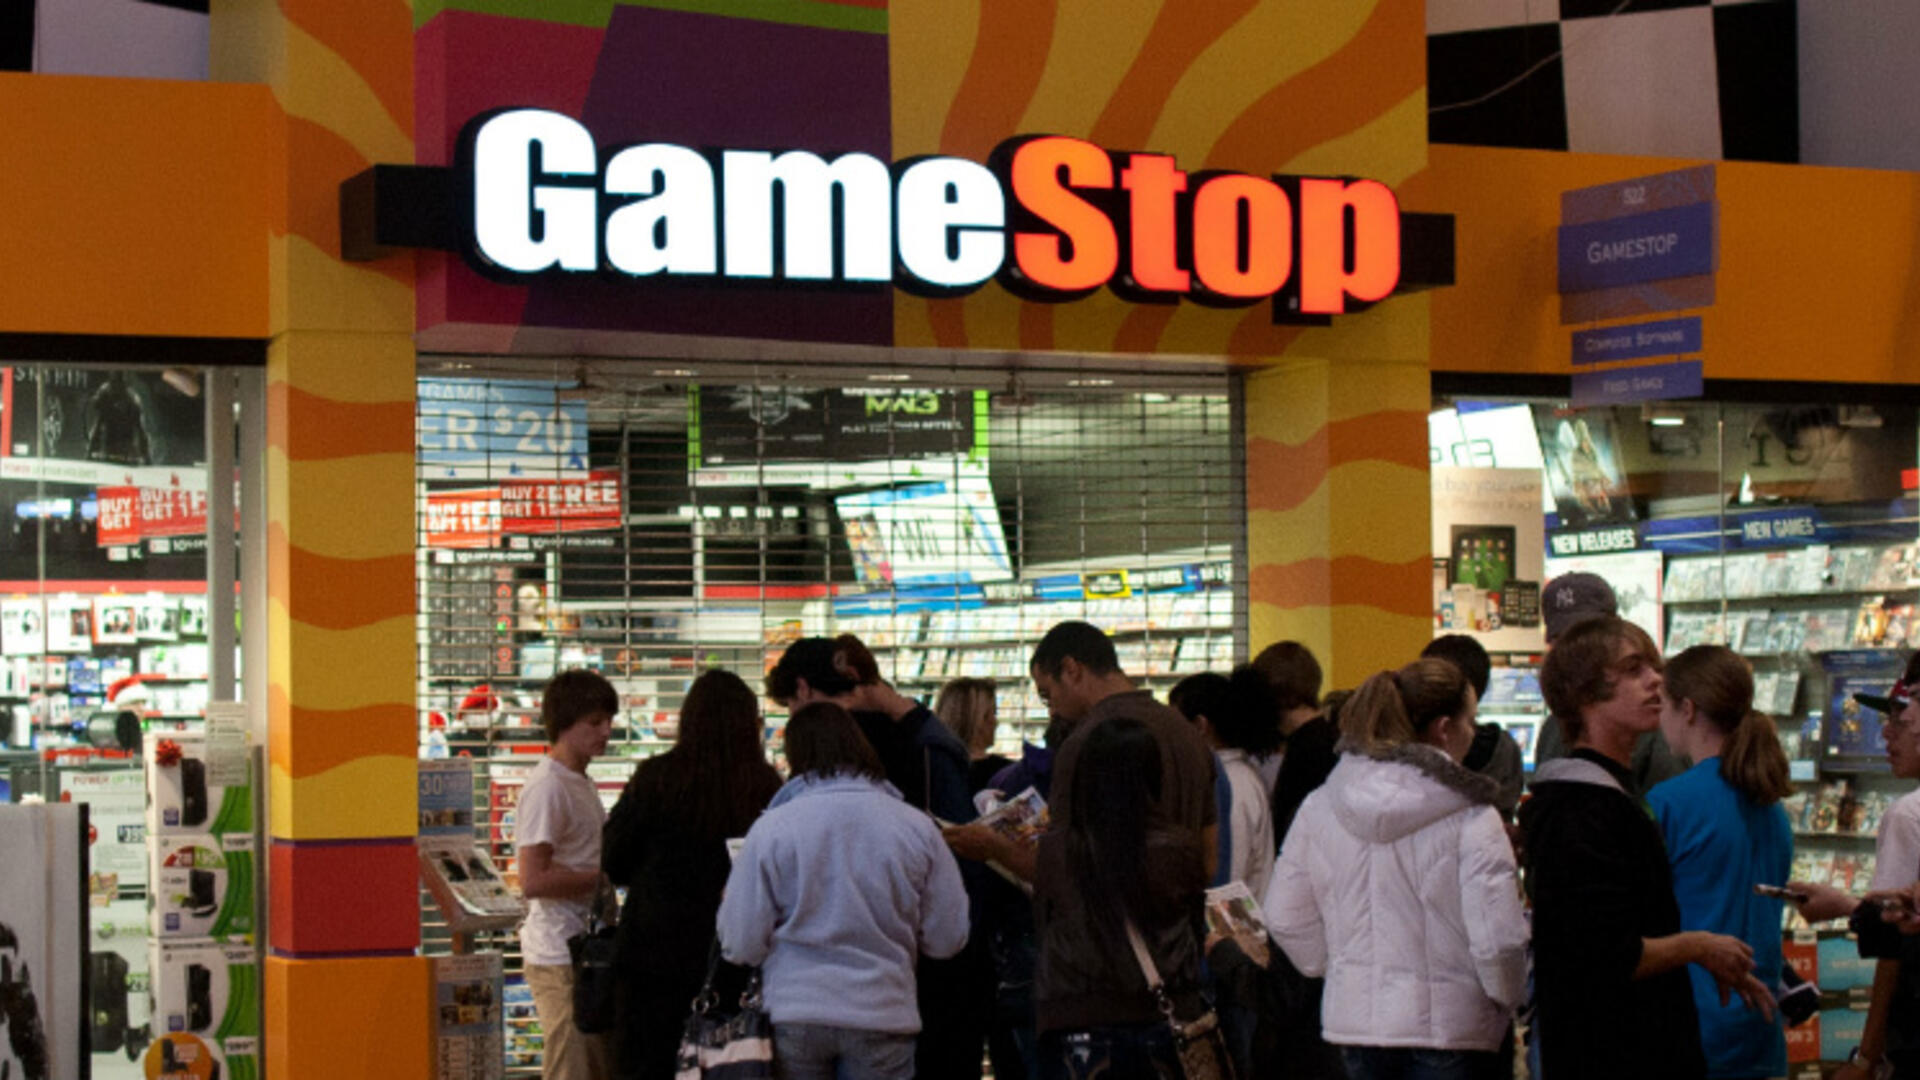 GameStop's Black Friday Deals Include Great Prices on Nintendo Switch Games, God of War, Assassin's Creed Odyssey